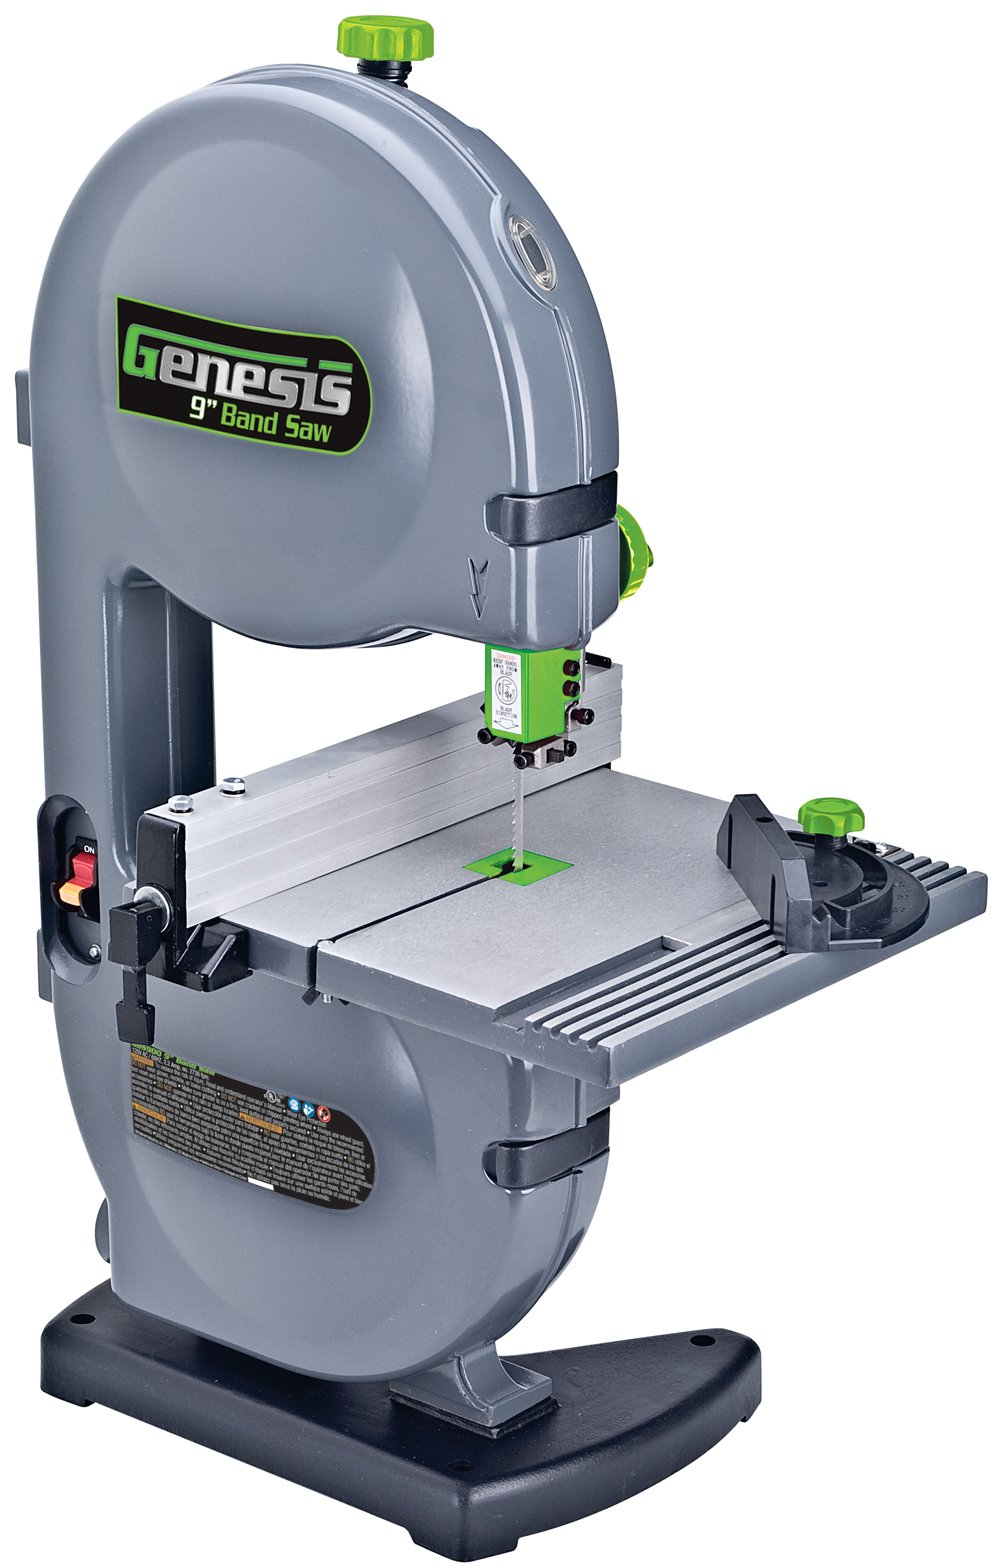 Genesis GBS900 9 2.2 Amp Band Saw with Dust Port, Tilt Table, Miter Gauge, and Rip Fence